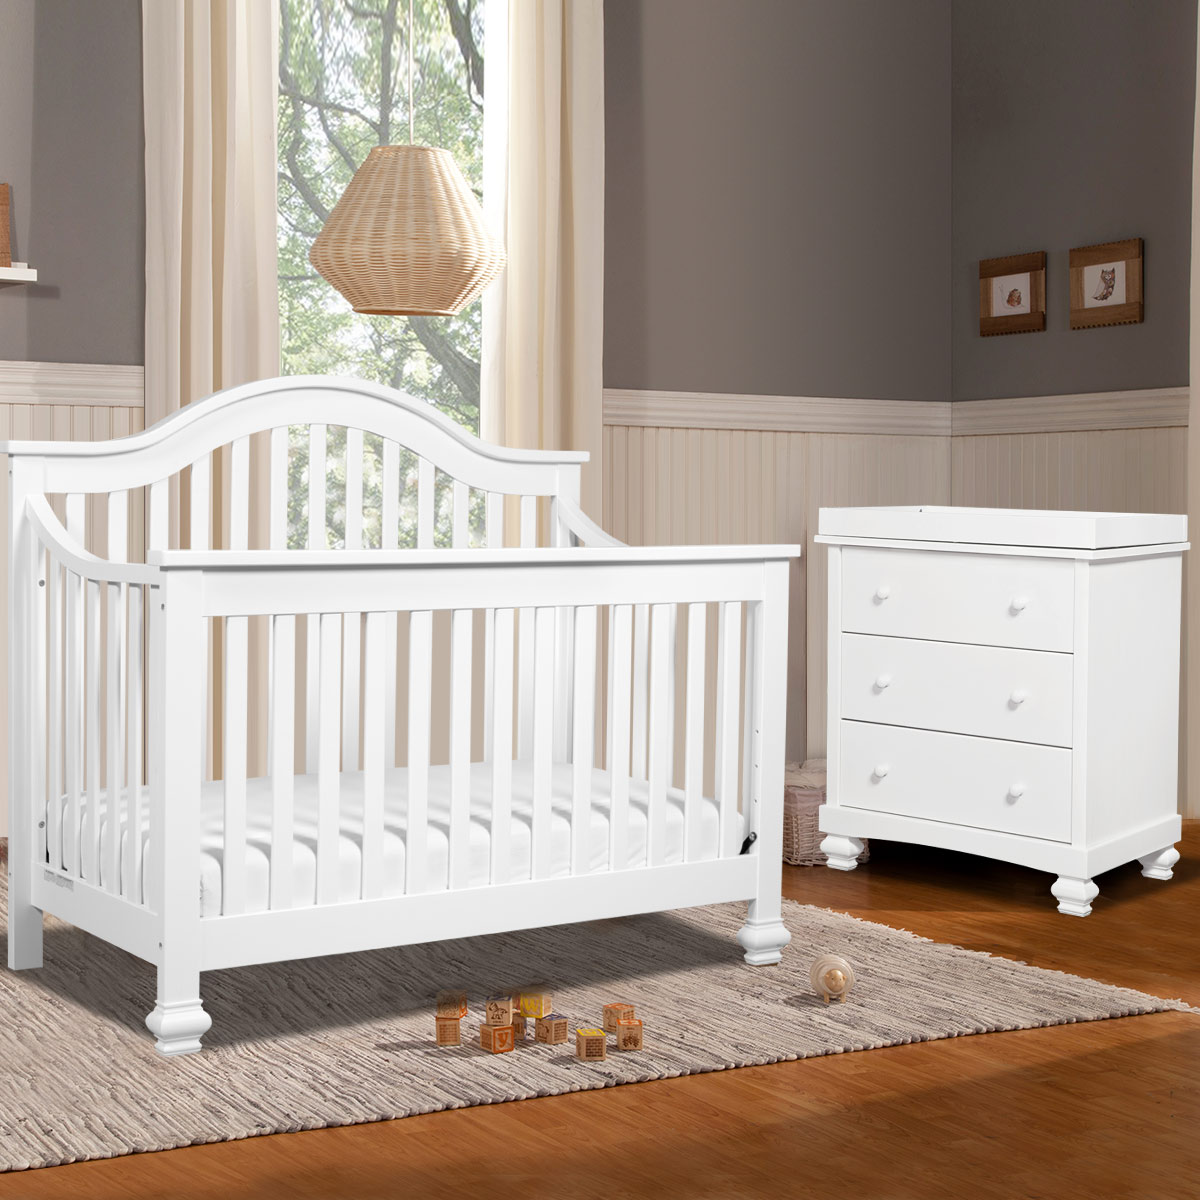 Davinci 2 Piece Nursery Set Clover 4 In 1 Convertible Crib And Dresser Changer White Free Shipping